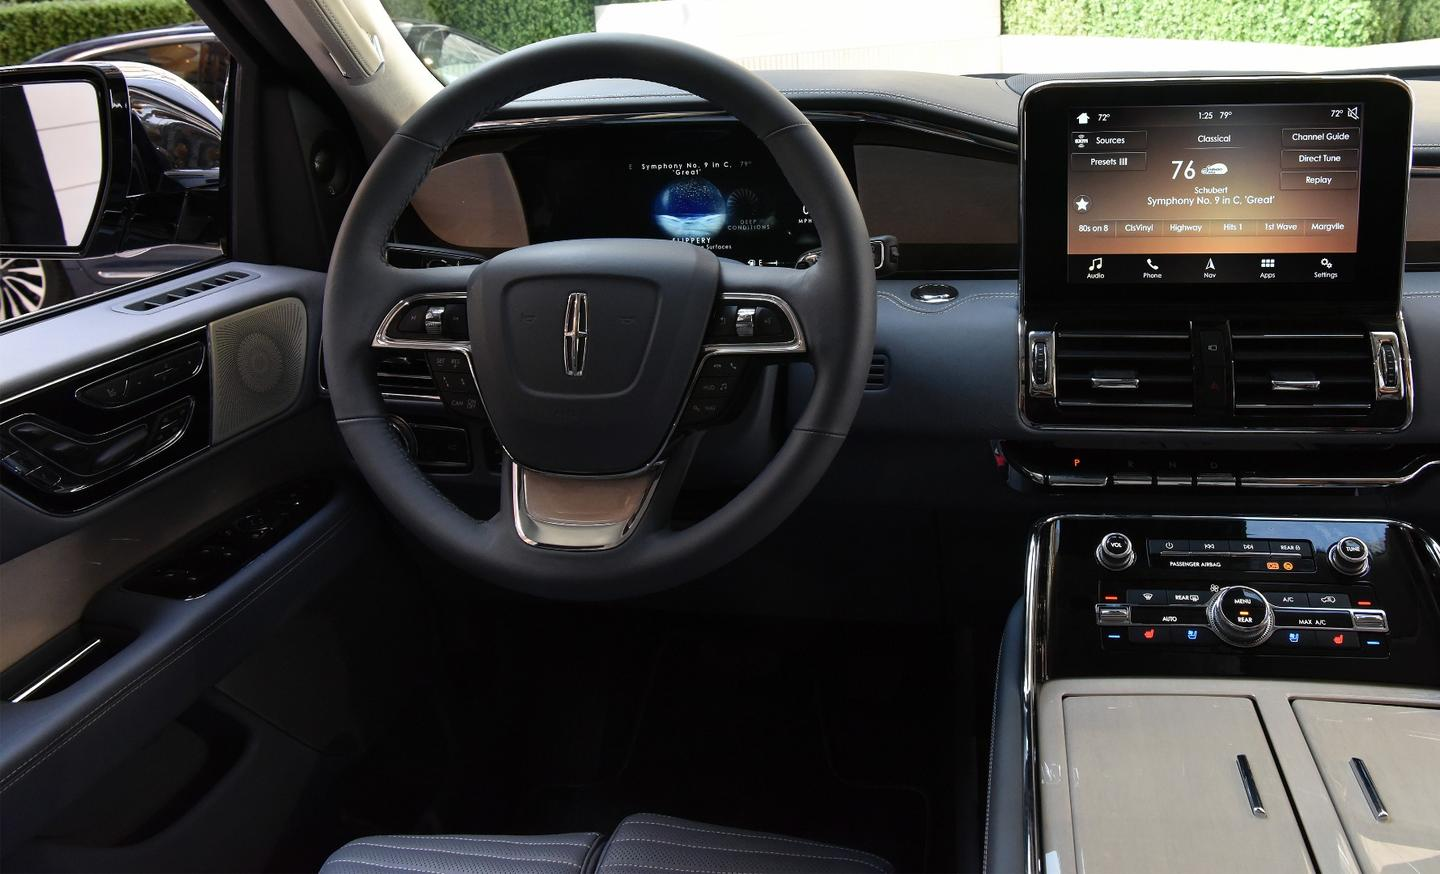 Behind the wheel of the Lincoln Navigator